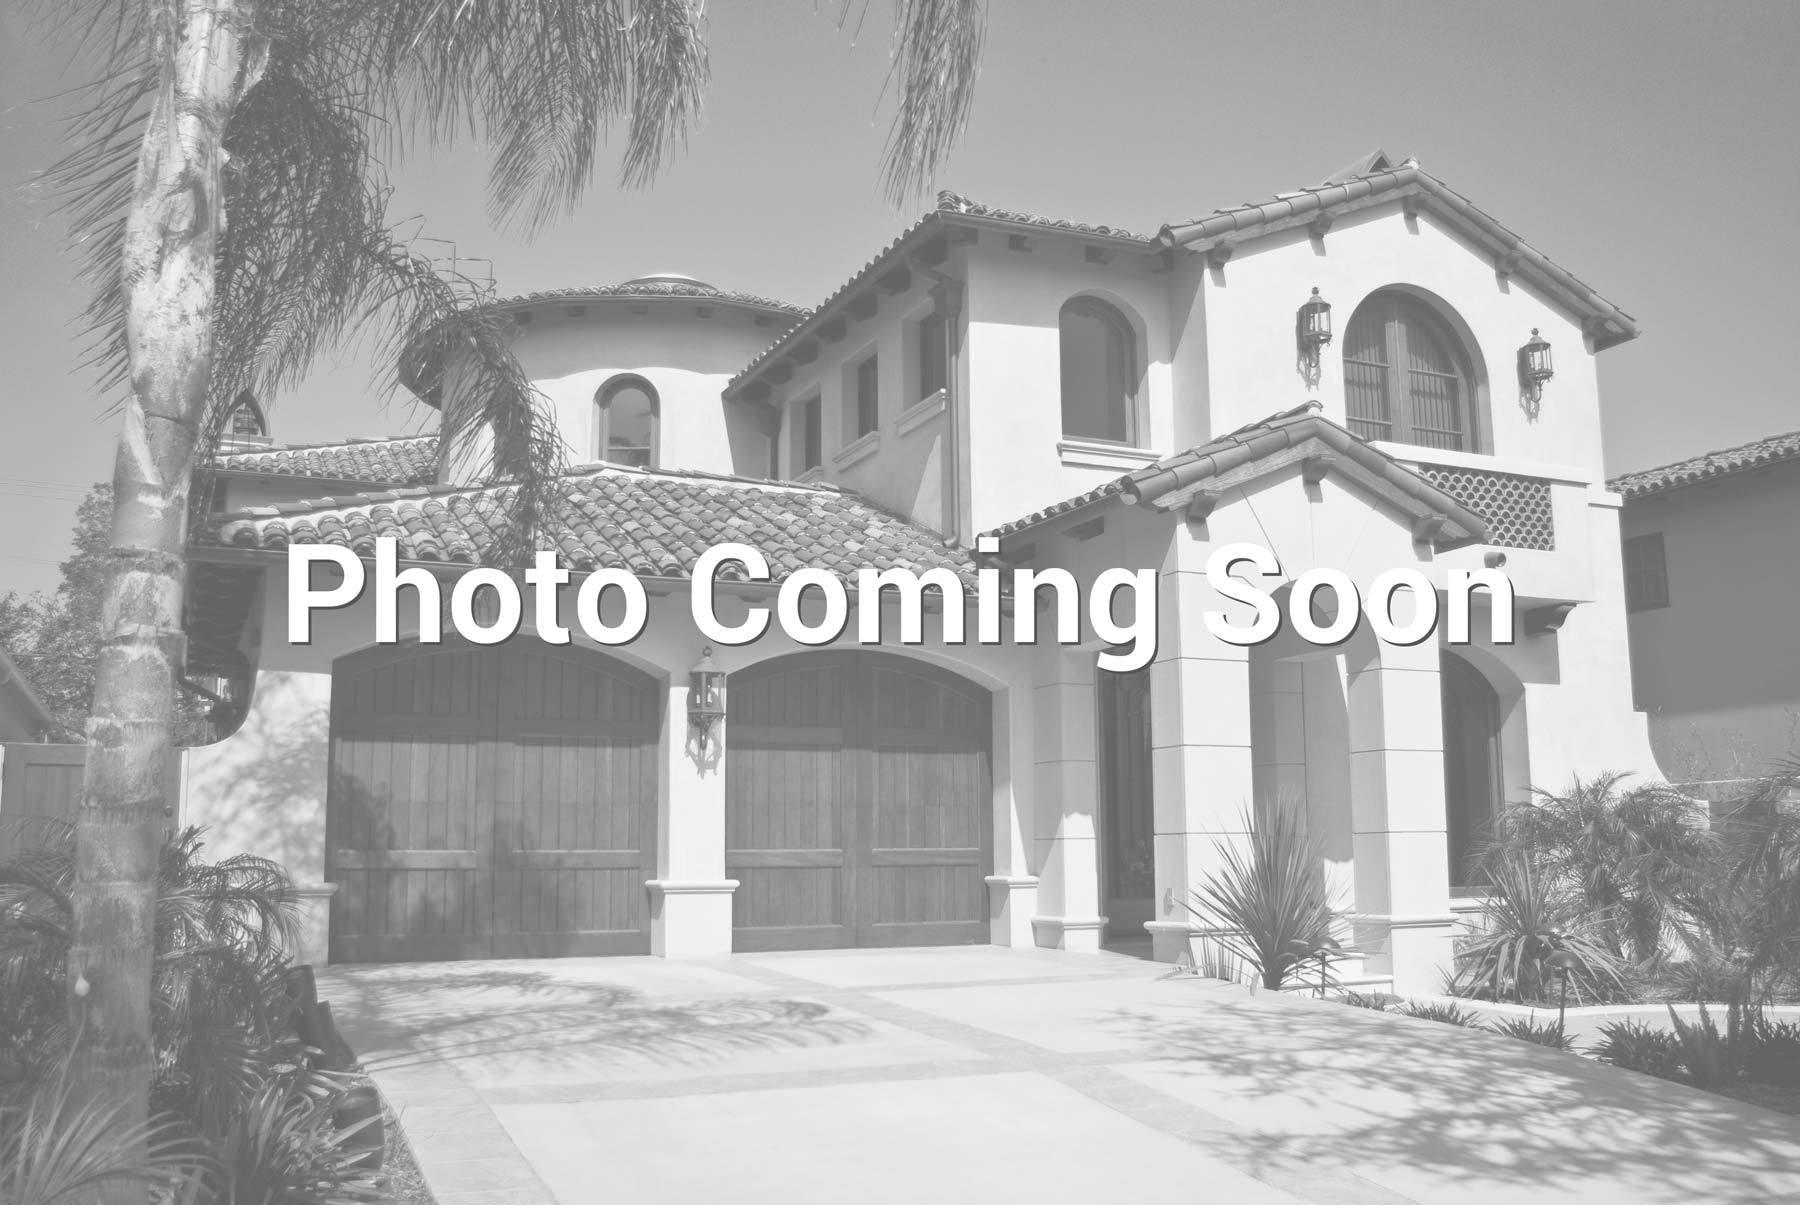 $600,000 - 5Br/3Ba - Home for Sale in Arabian Views 2 Lot 165-273 Tr A, Scottsdale